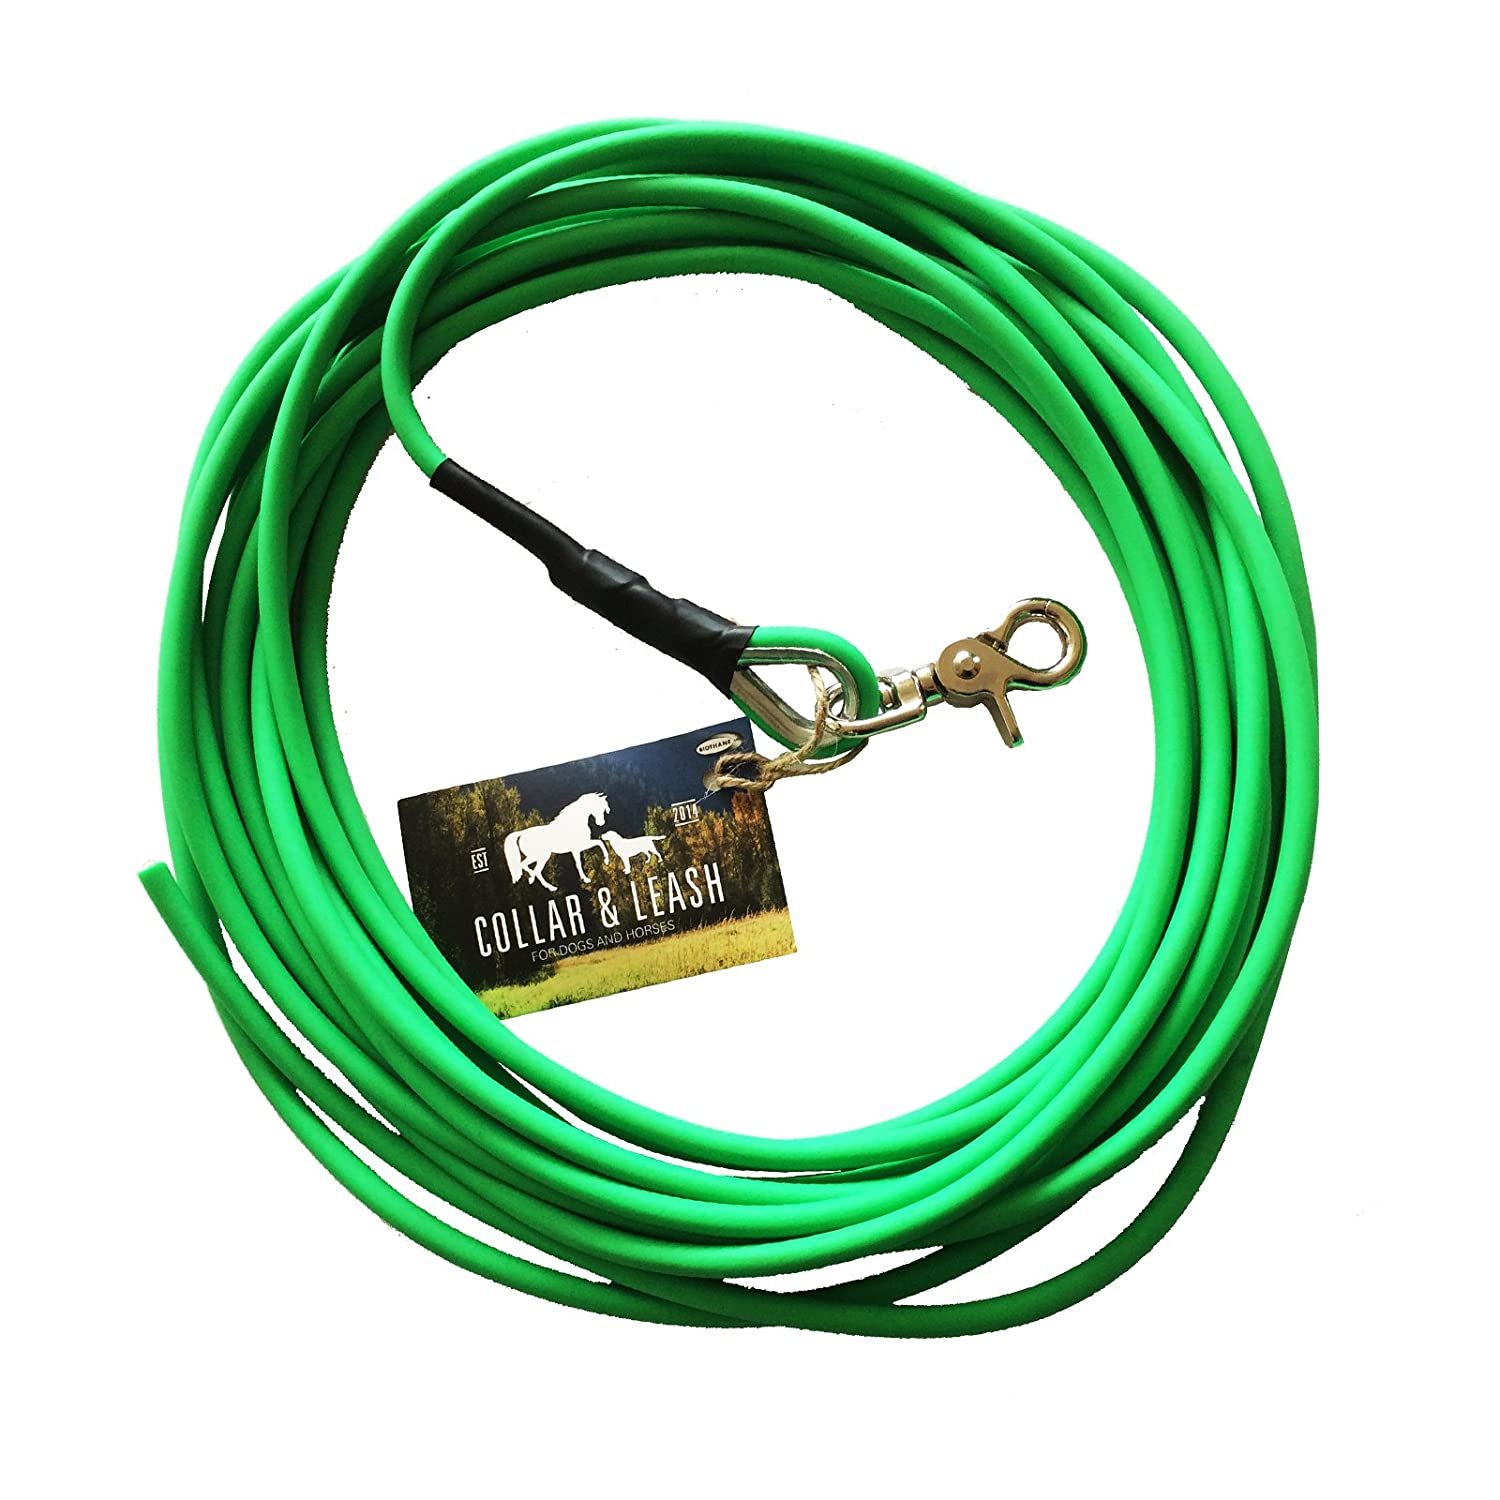 12 m Recall Lead 6 mm Round Biothane 1 m Neon Green Without Wrist Strap